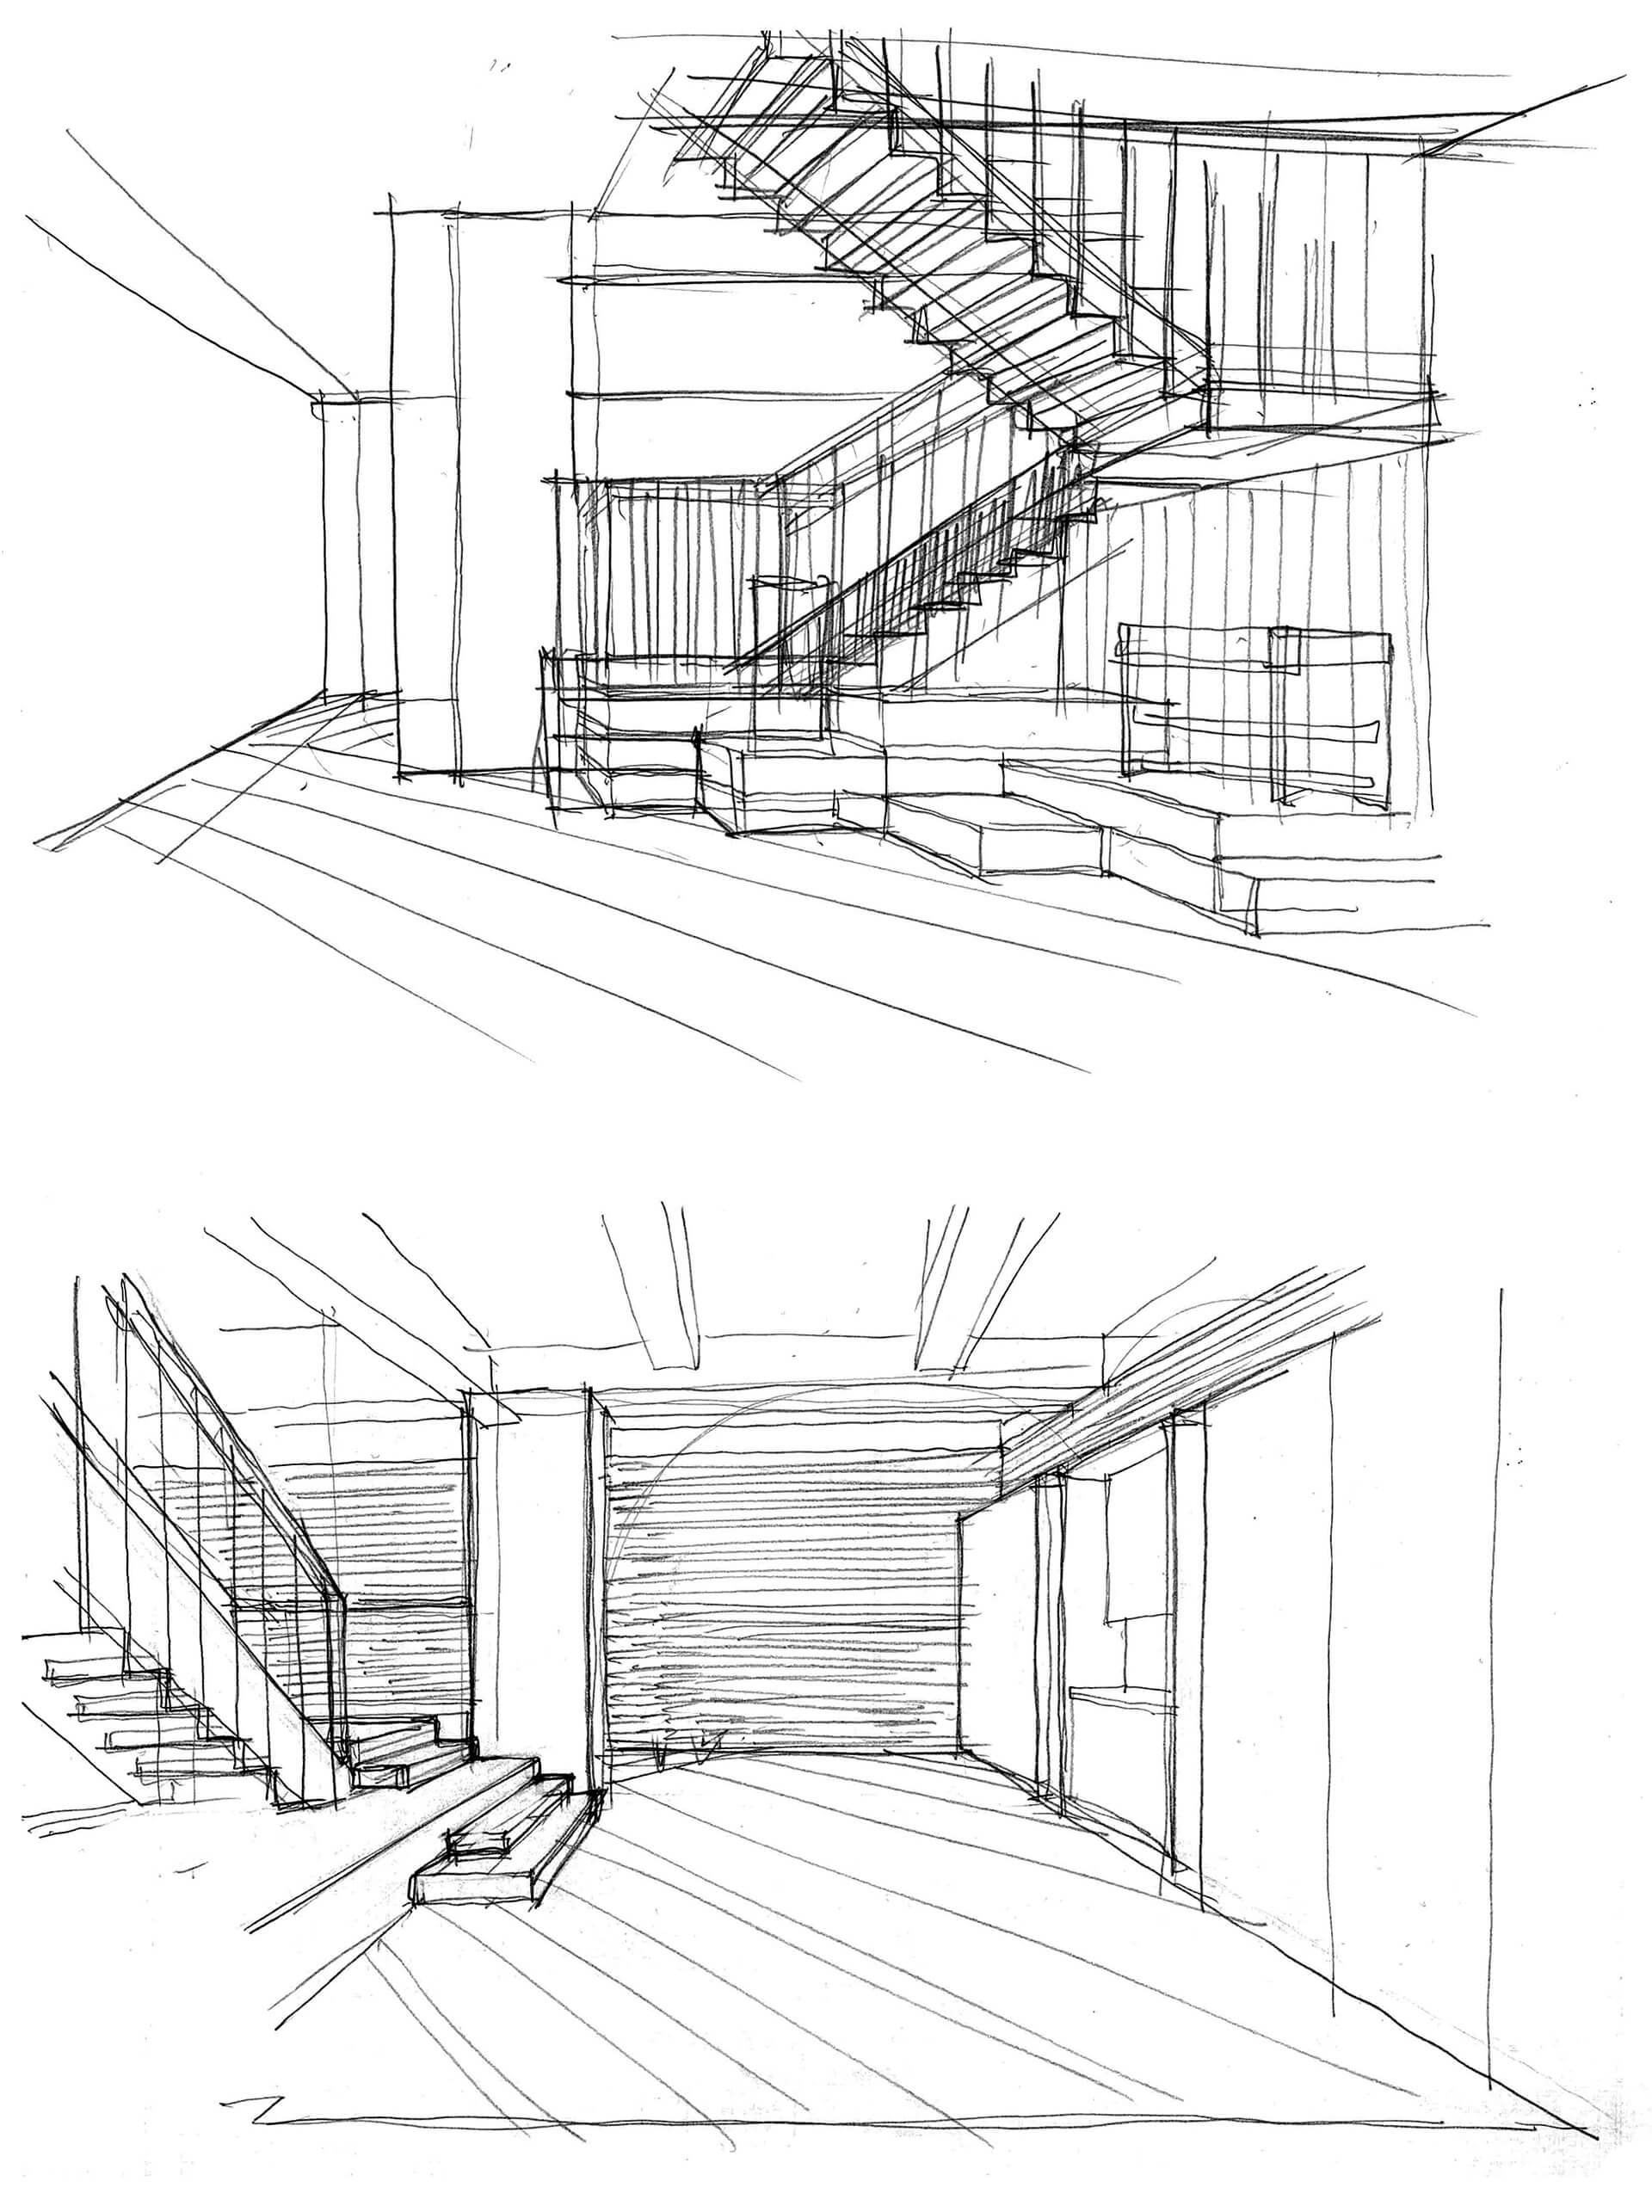 Concept sketches for The Stairway and The Gallery | House of Madison designed by via. | STIRworld